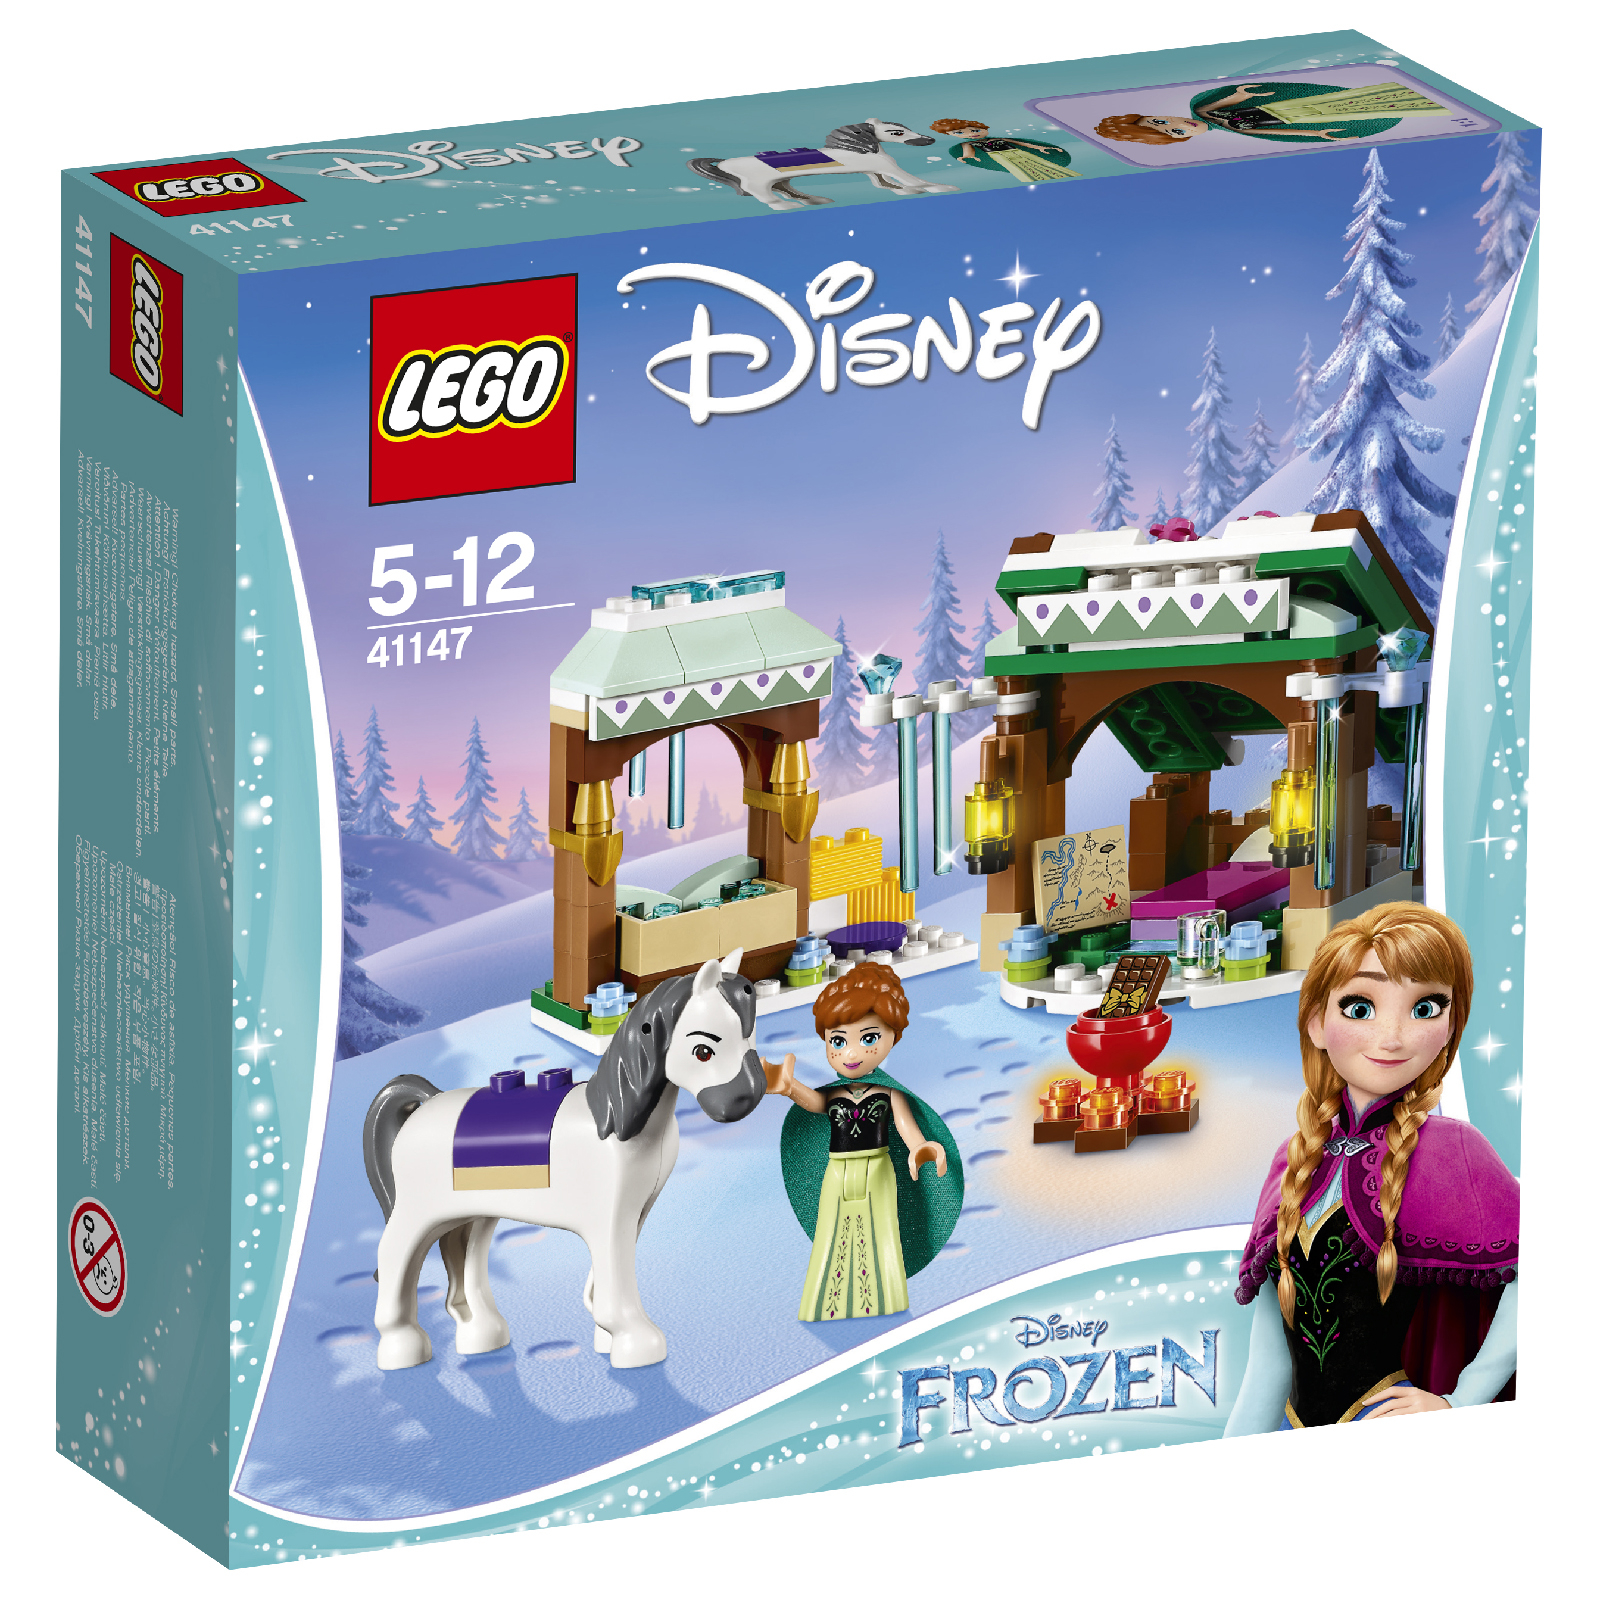 LEGO Disney Princess: Anna